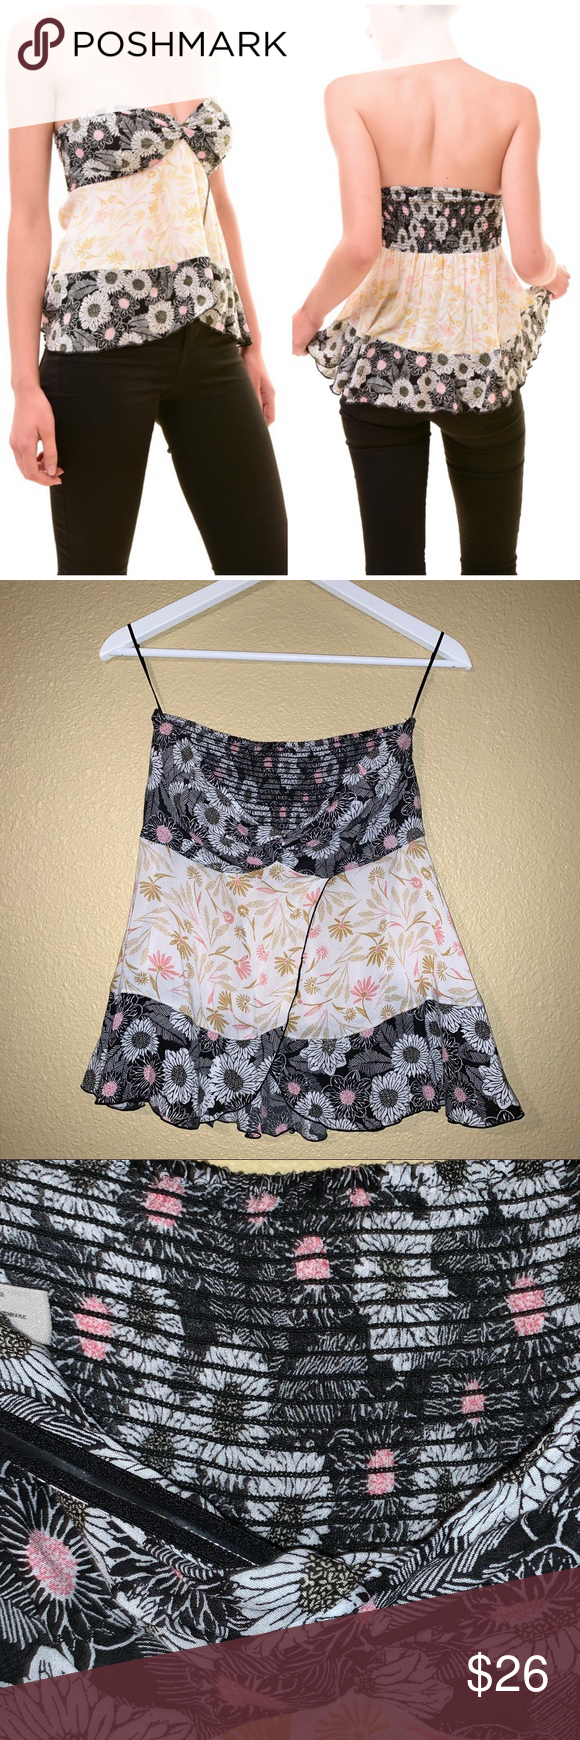 22945bcfb8 Free People Intimately Floral Strapless Top Free People Intimately Floral  Boho Strapless Tube Top Layered Two